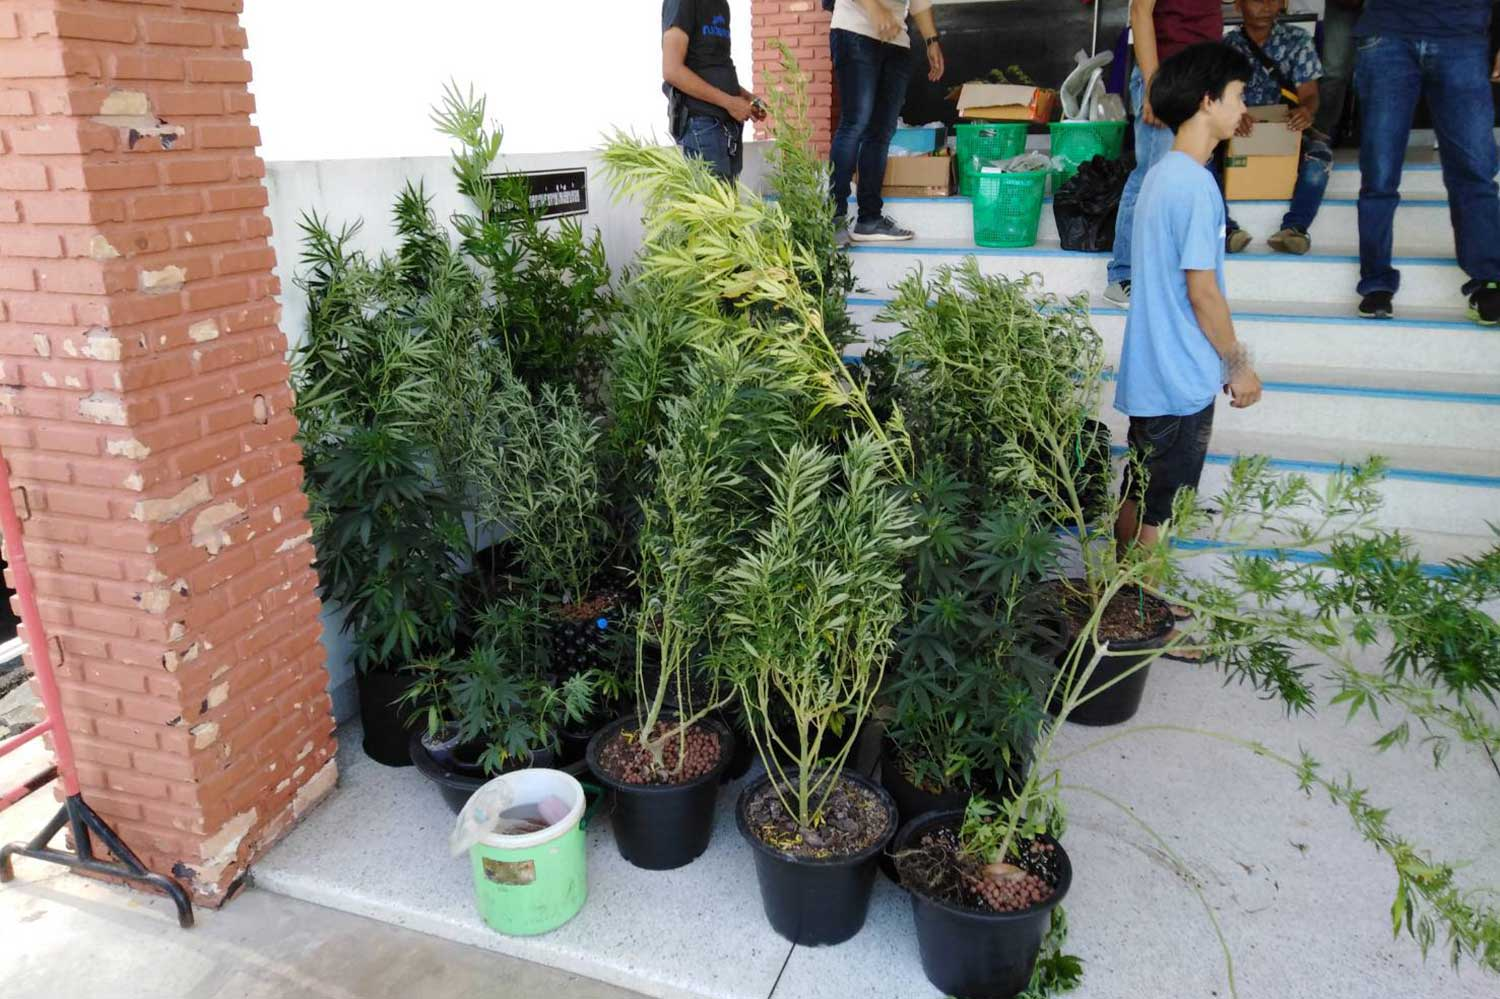 A total of 41 marijuana plants were seized from the house of a 24-year-old man in Nakhon Si Thammarat during a police raid. (Photo supplied via Wassayos Ngamkham)